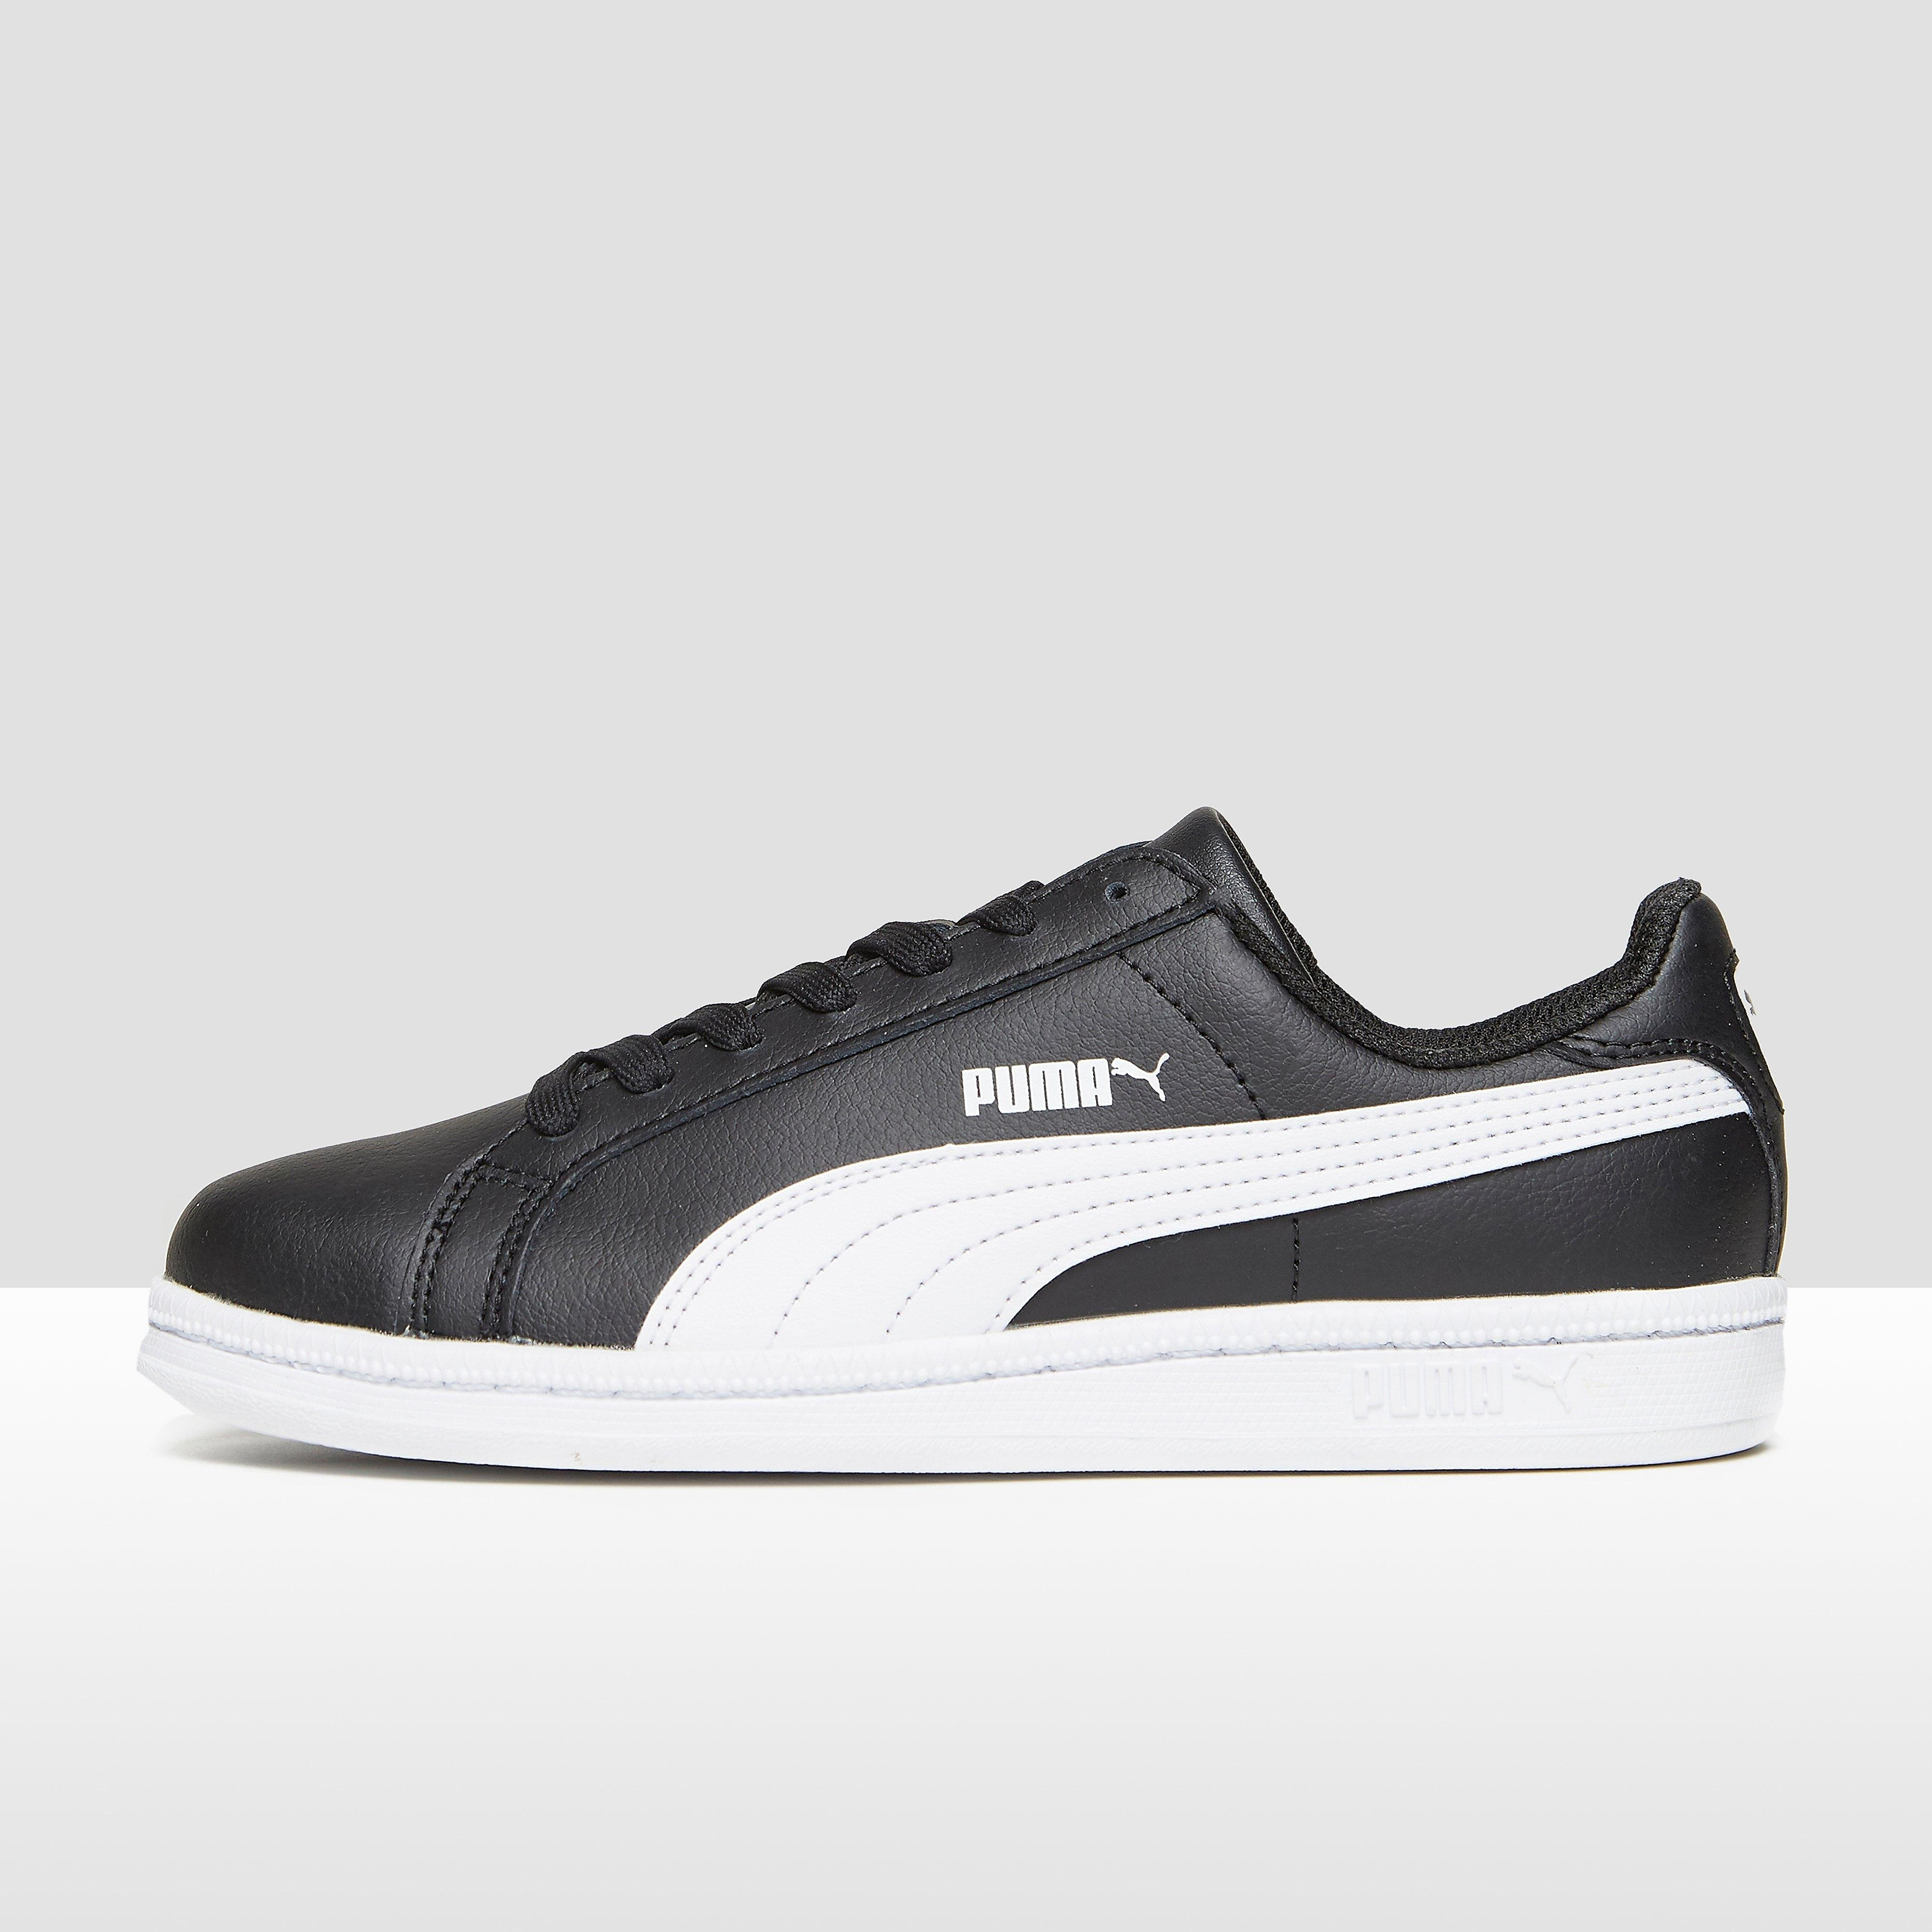 PUMA SMASH LEATHER SNEAKERS ZWART/WIT KINDEREN